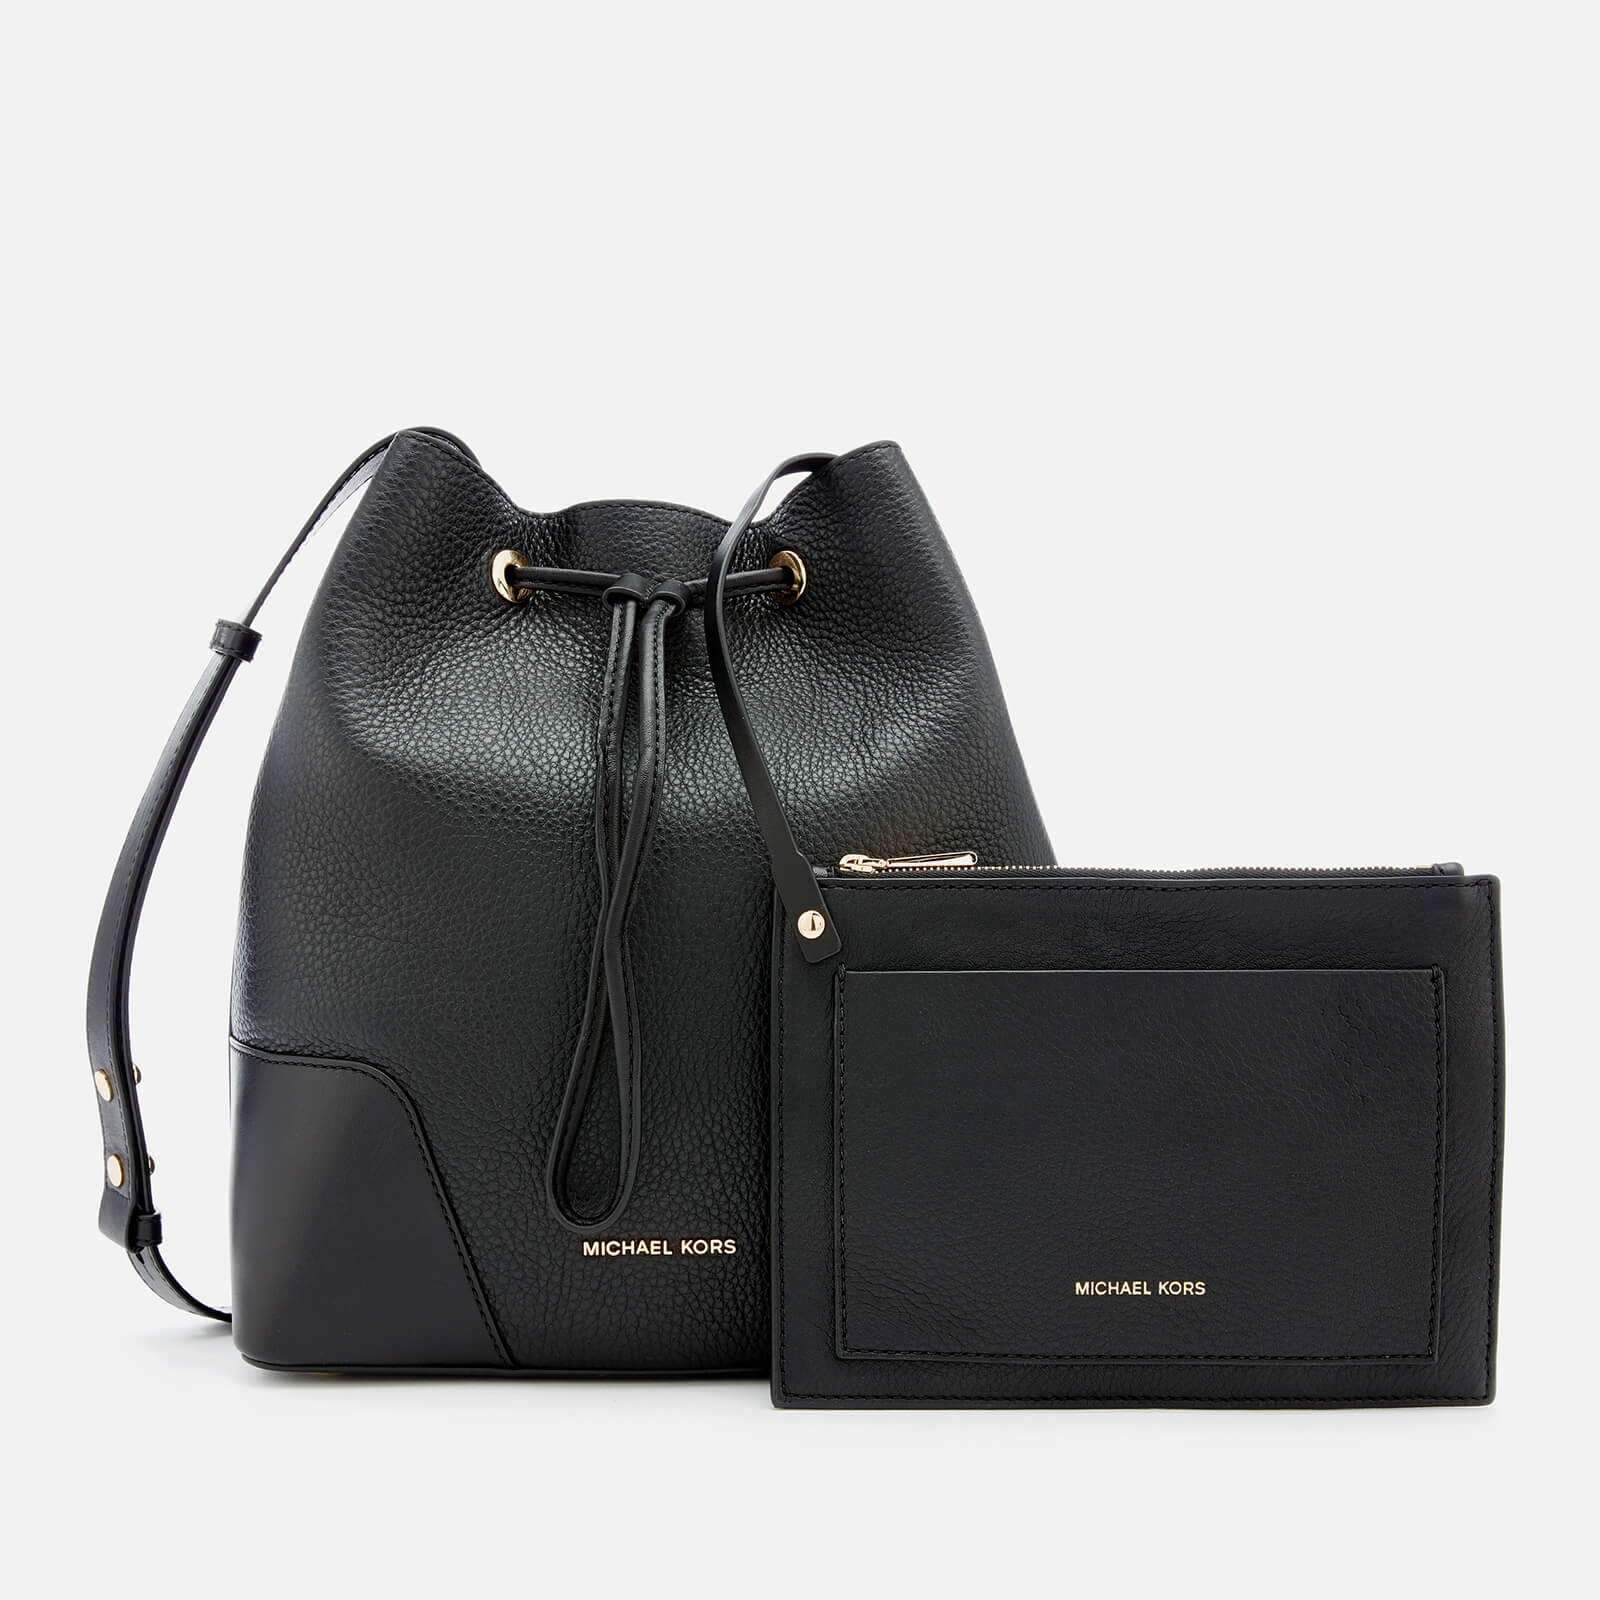 3dedf0be48ae1 MICHAEL MICHAEL KORS Women s Cary Medium Bucket Bag - Black - Free ...